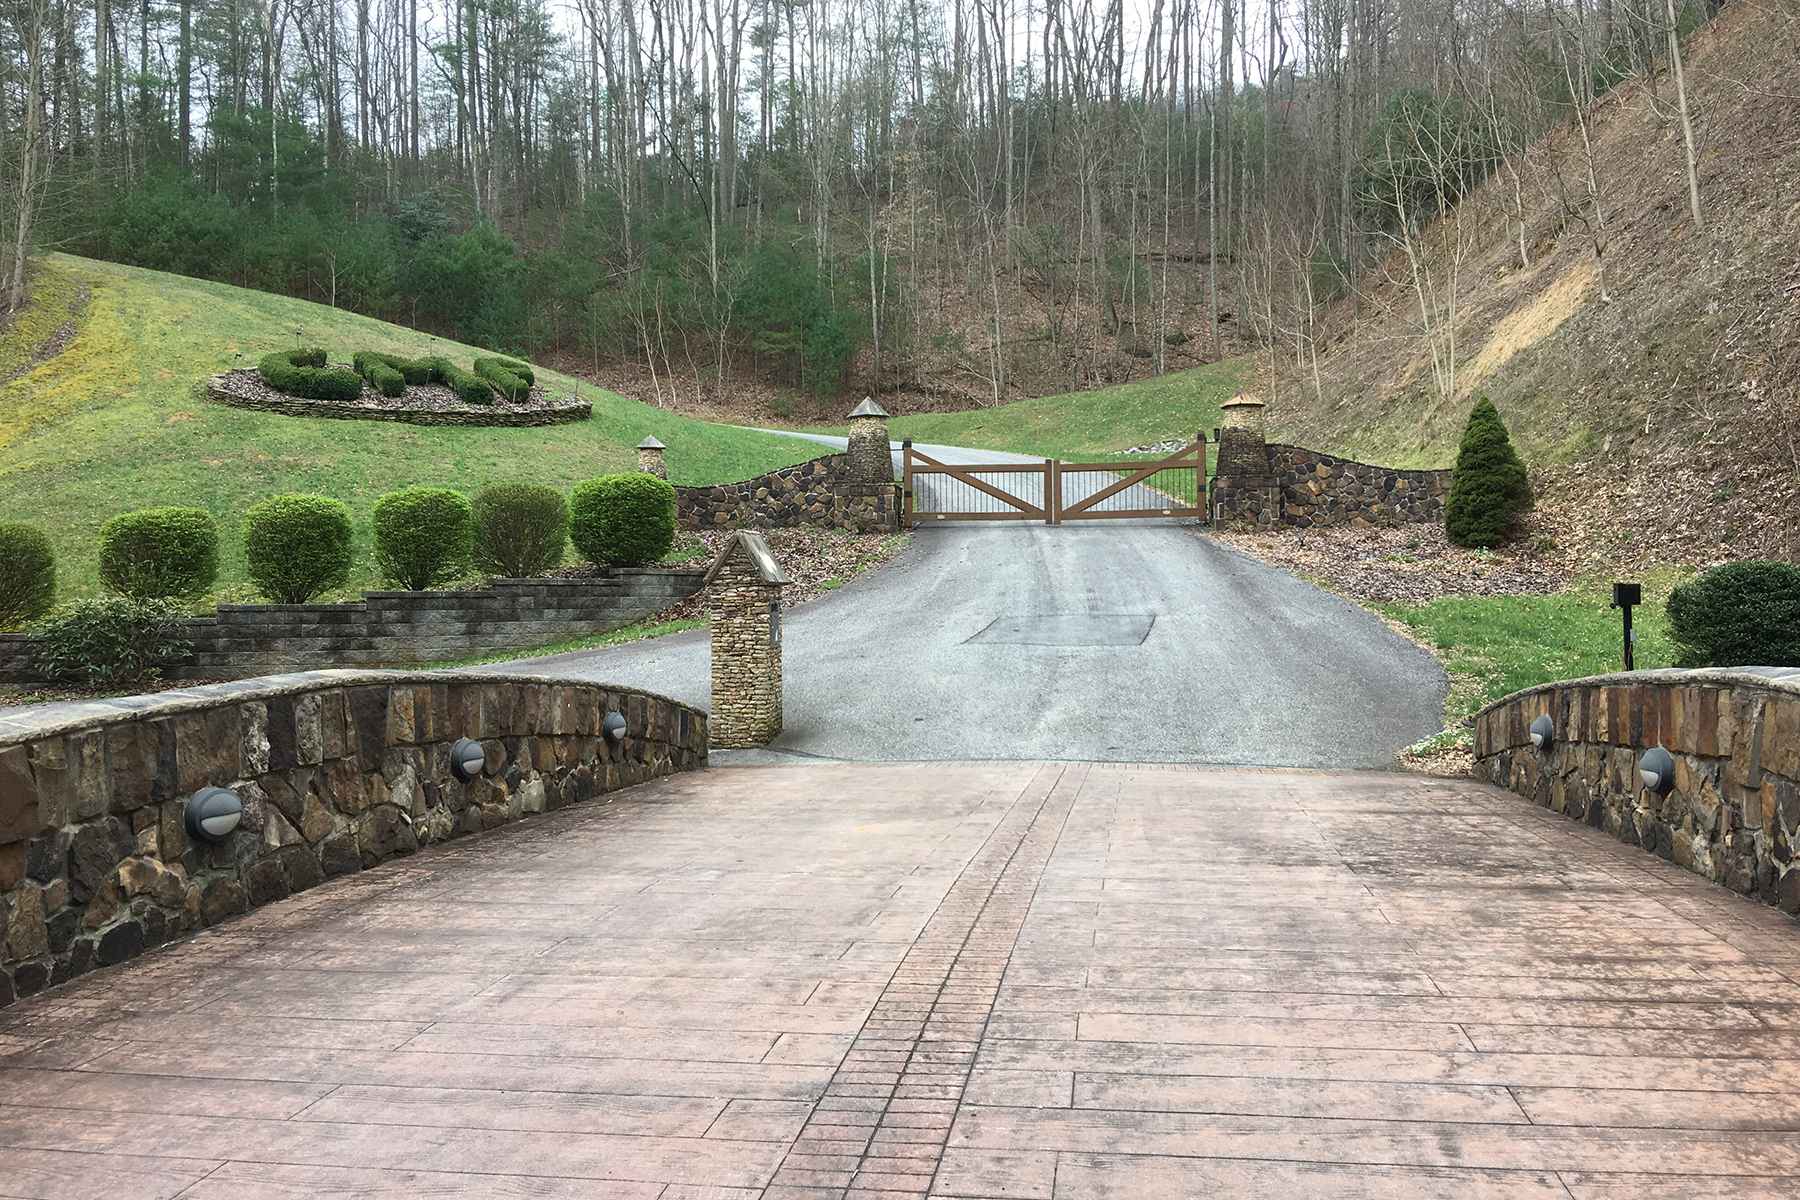 Land for Sale at CHESTNUT MOUNTAIN FARMS - MCGRADY Lot 142 Carriage House Trl McGrady, North Carolina 28649 United States